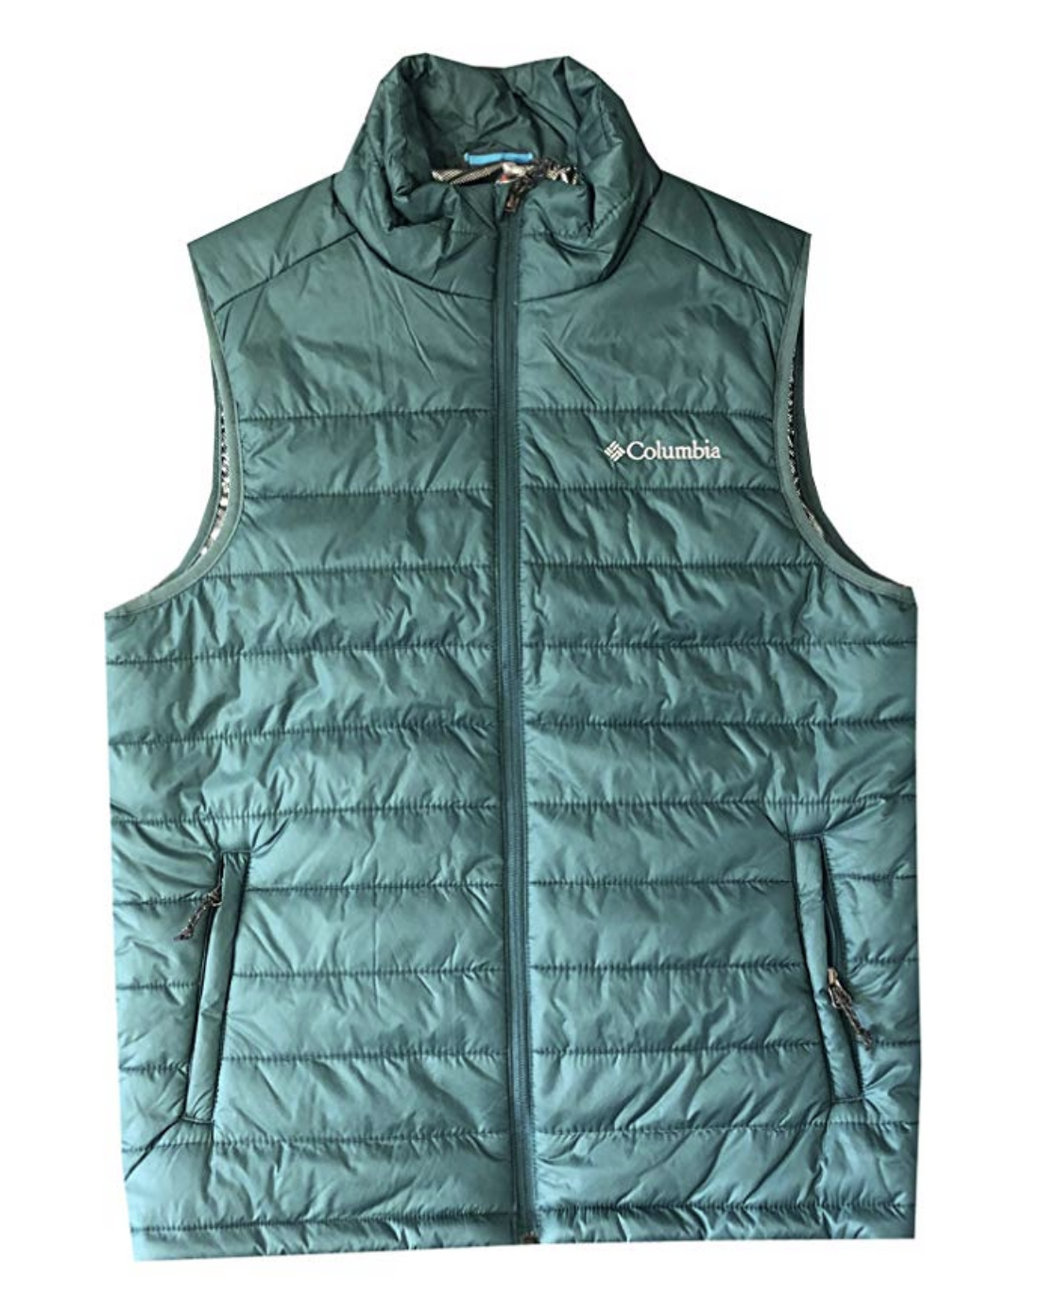 Columbia Men's Small Teal Crested Butte II Omni-Heat Puffer Vest - NEW WITH TAGS